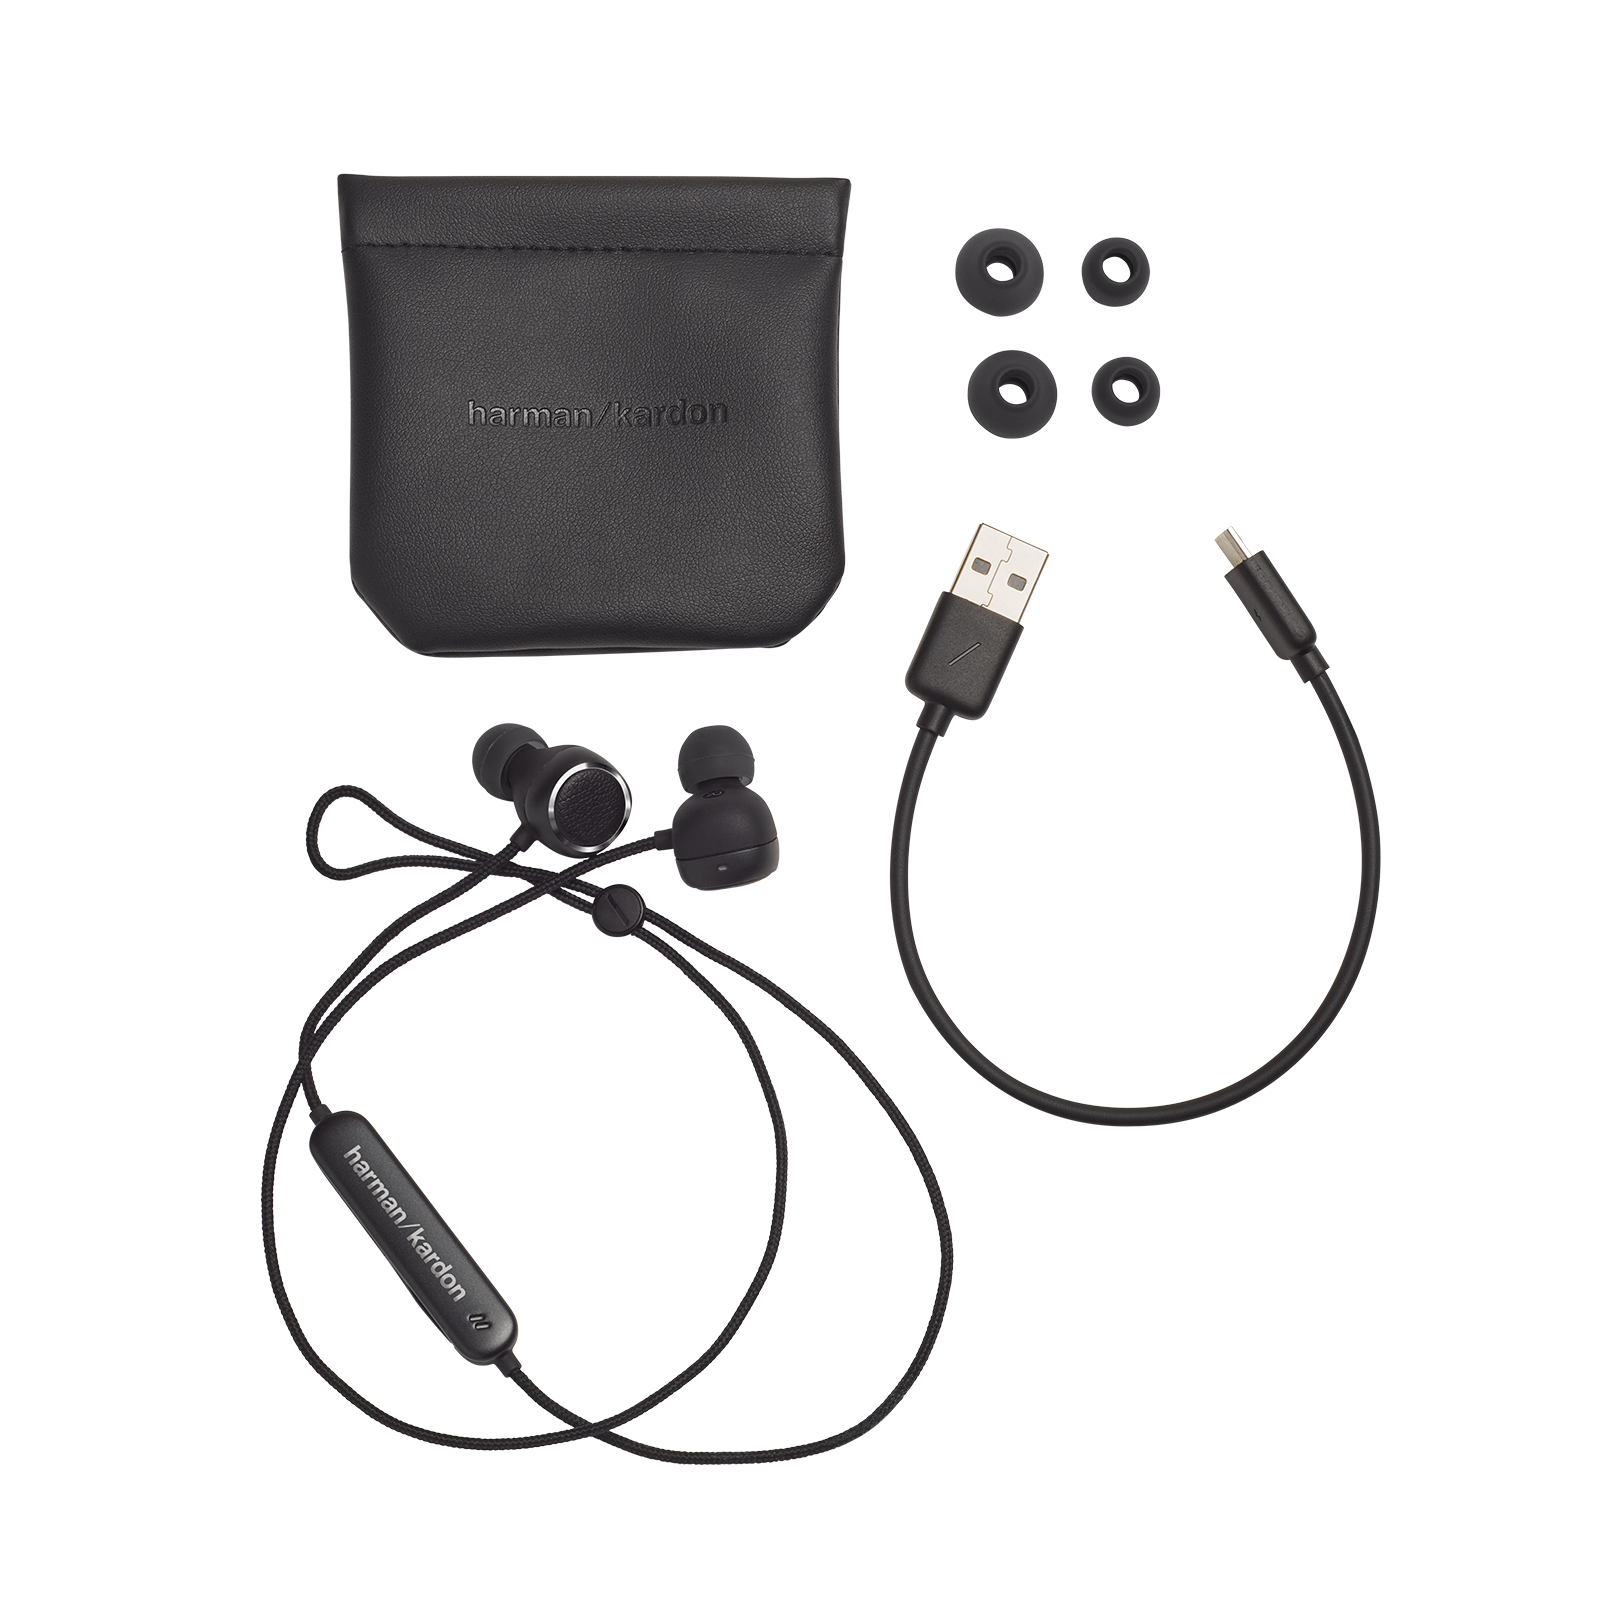 Harman Kardon FLY BT - Black - Bluetooth in-ear headphones - Detailshot 6